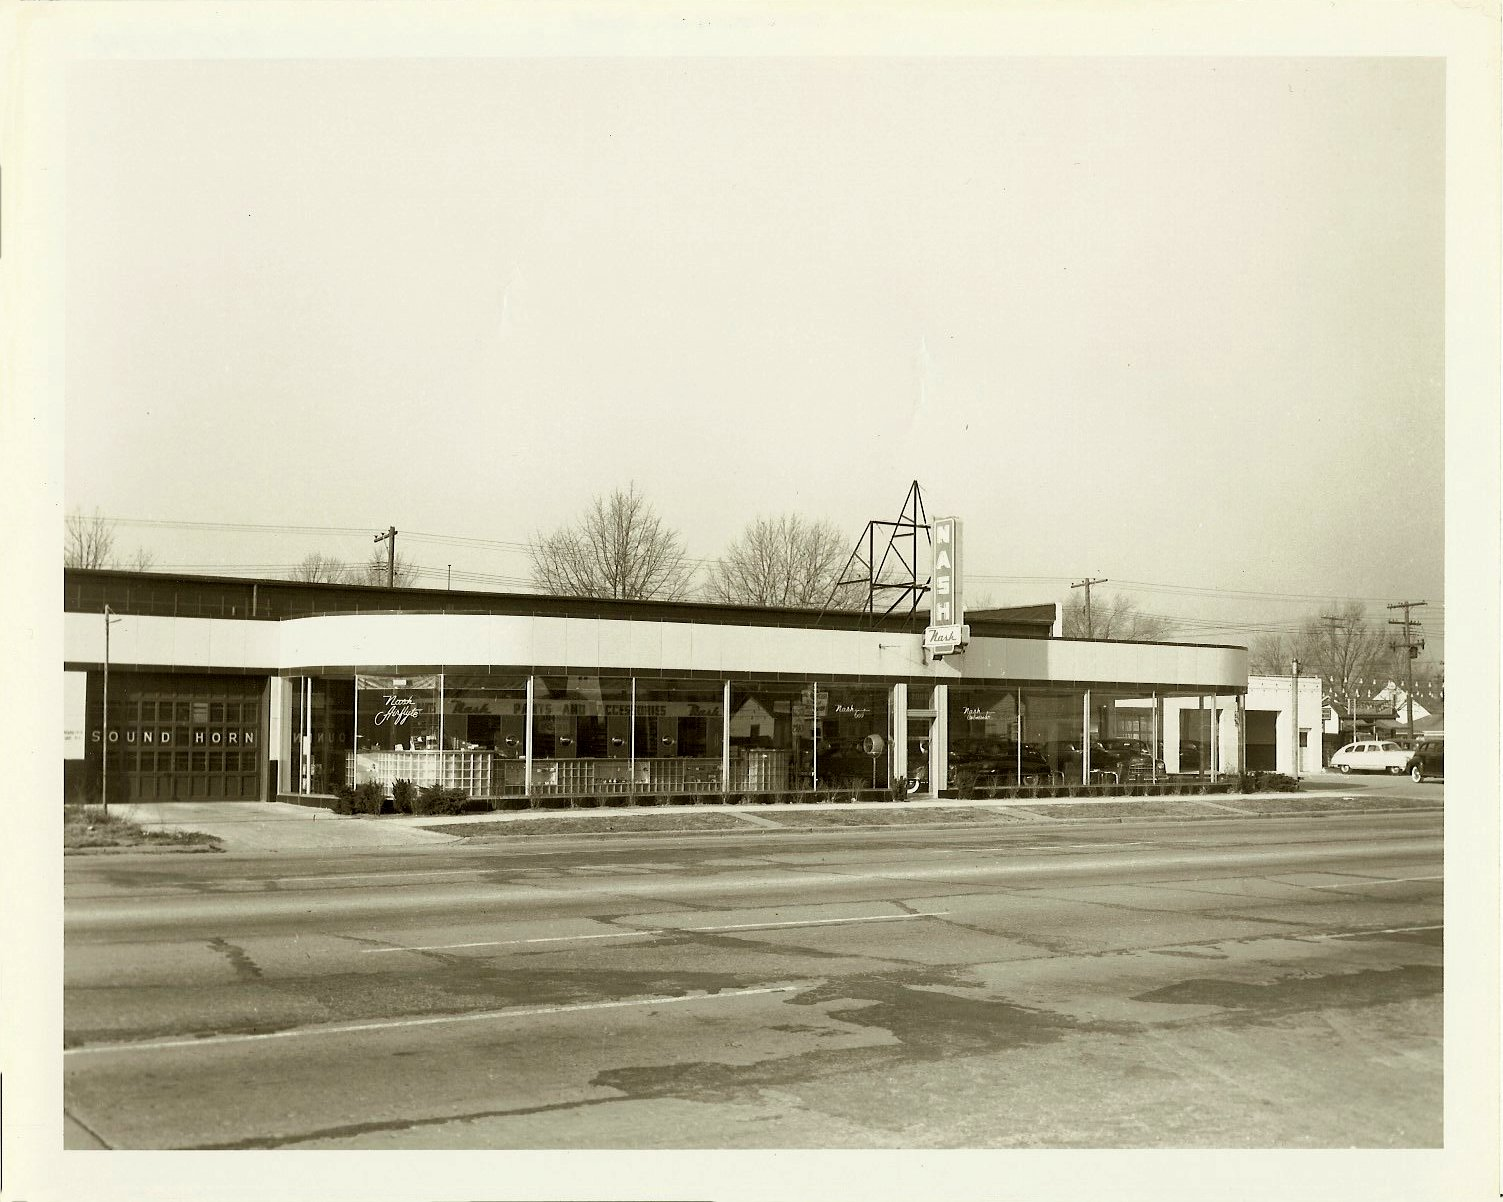 Livernois Company NASH Automobile Dealership Detroit, Michigan ca. 1949 10″x8″ Black & White photograph